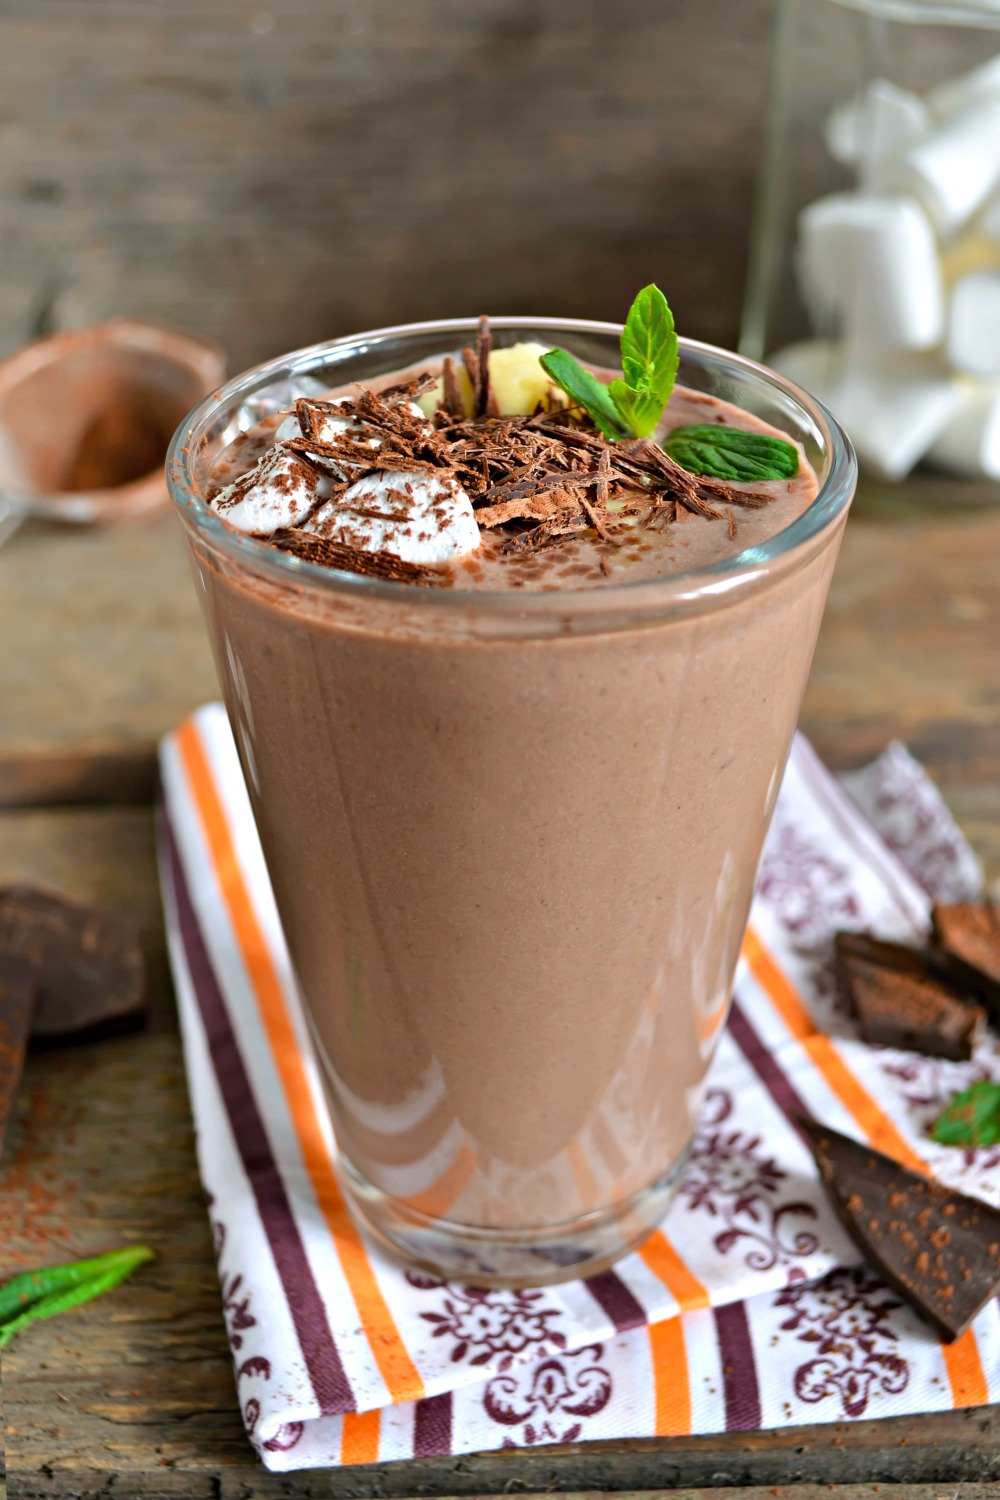 Chocolate Peanut Butter Protein Smoothie Recipe #TheDayIsYours